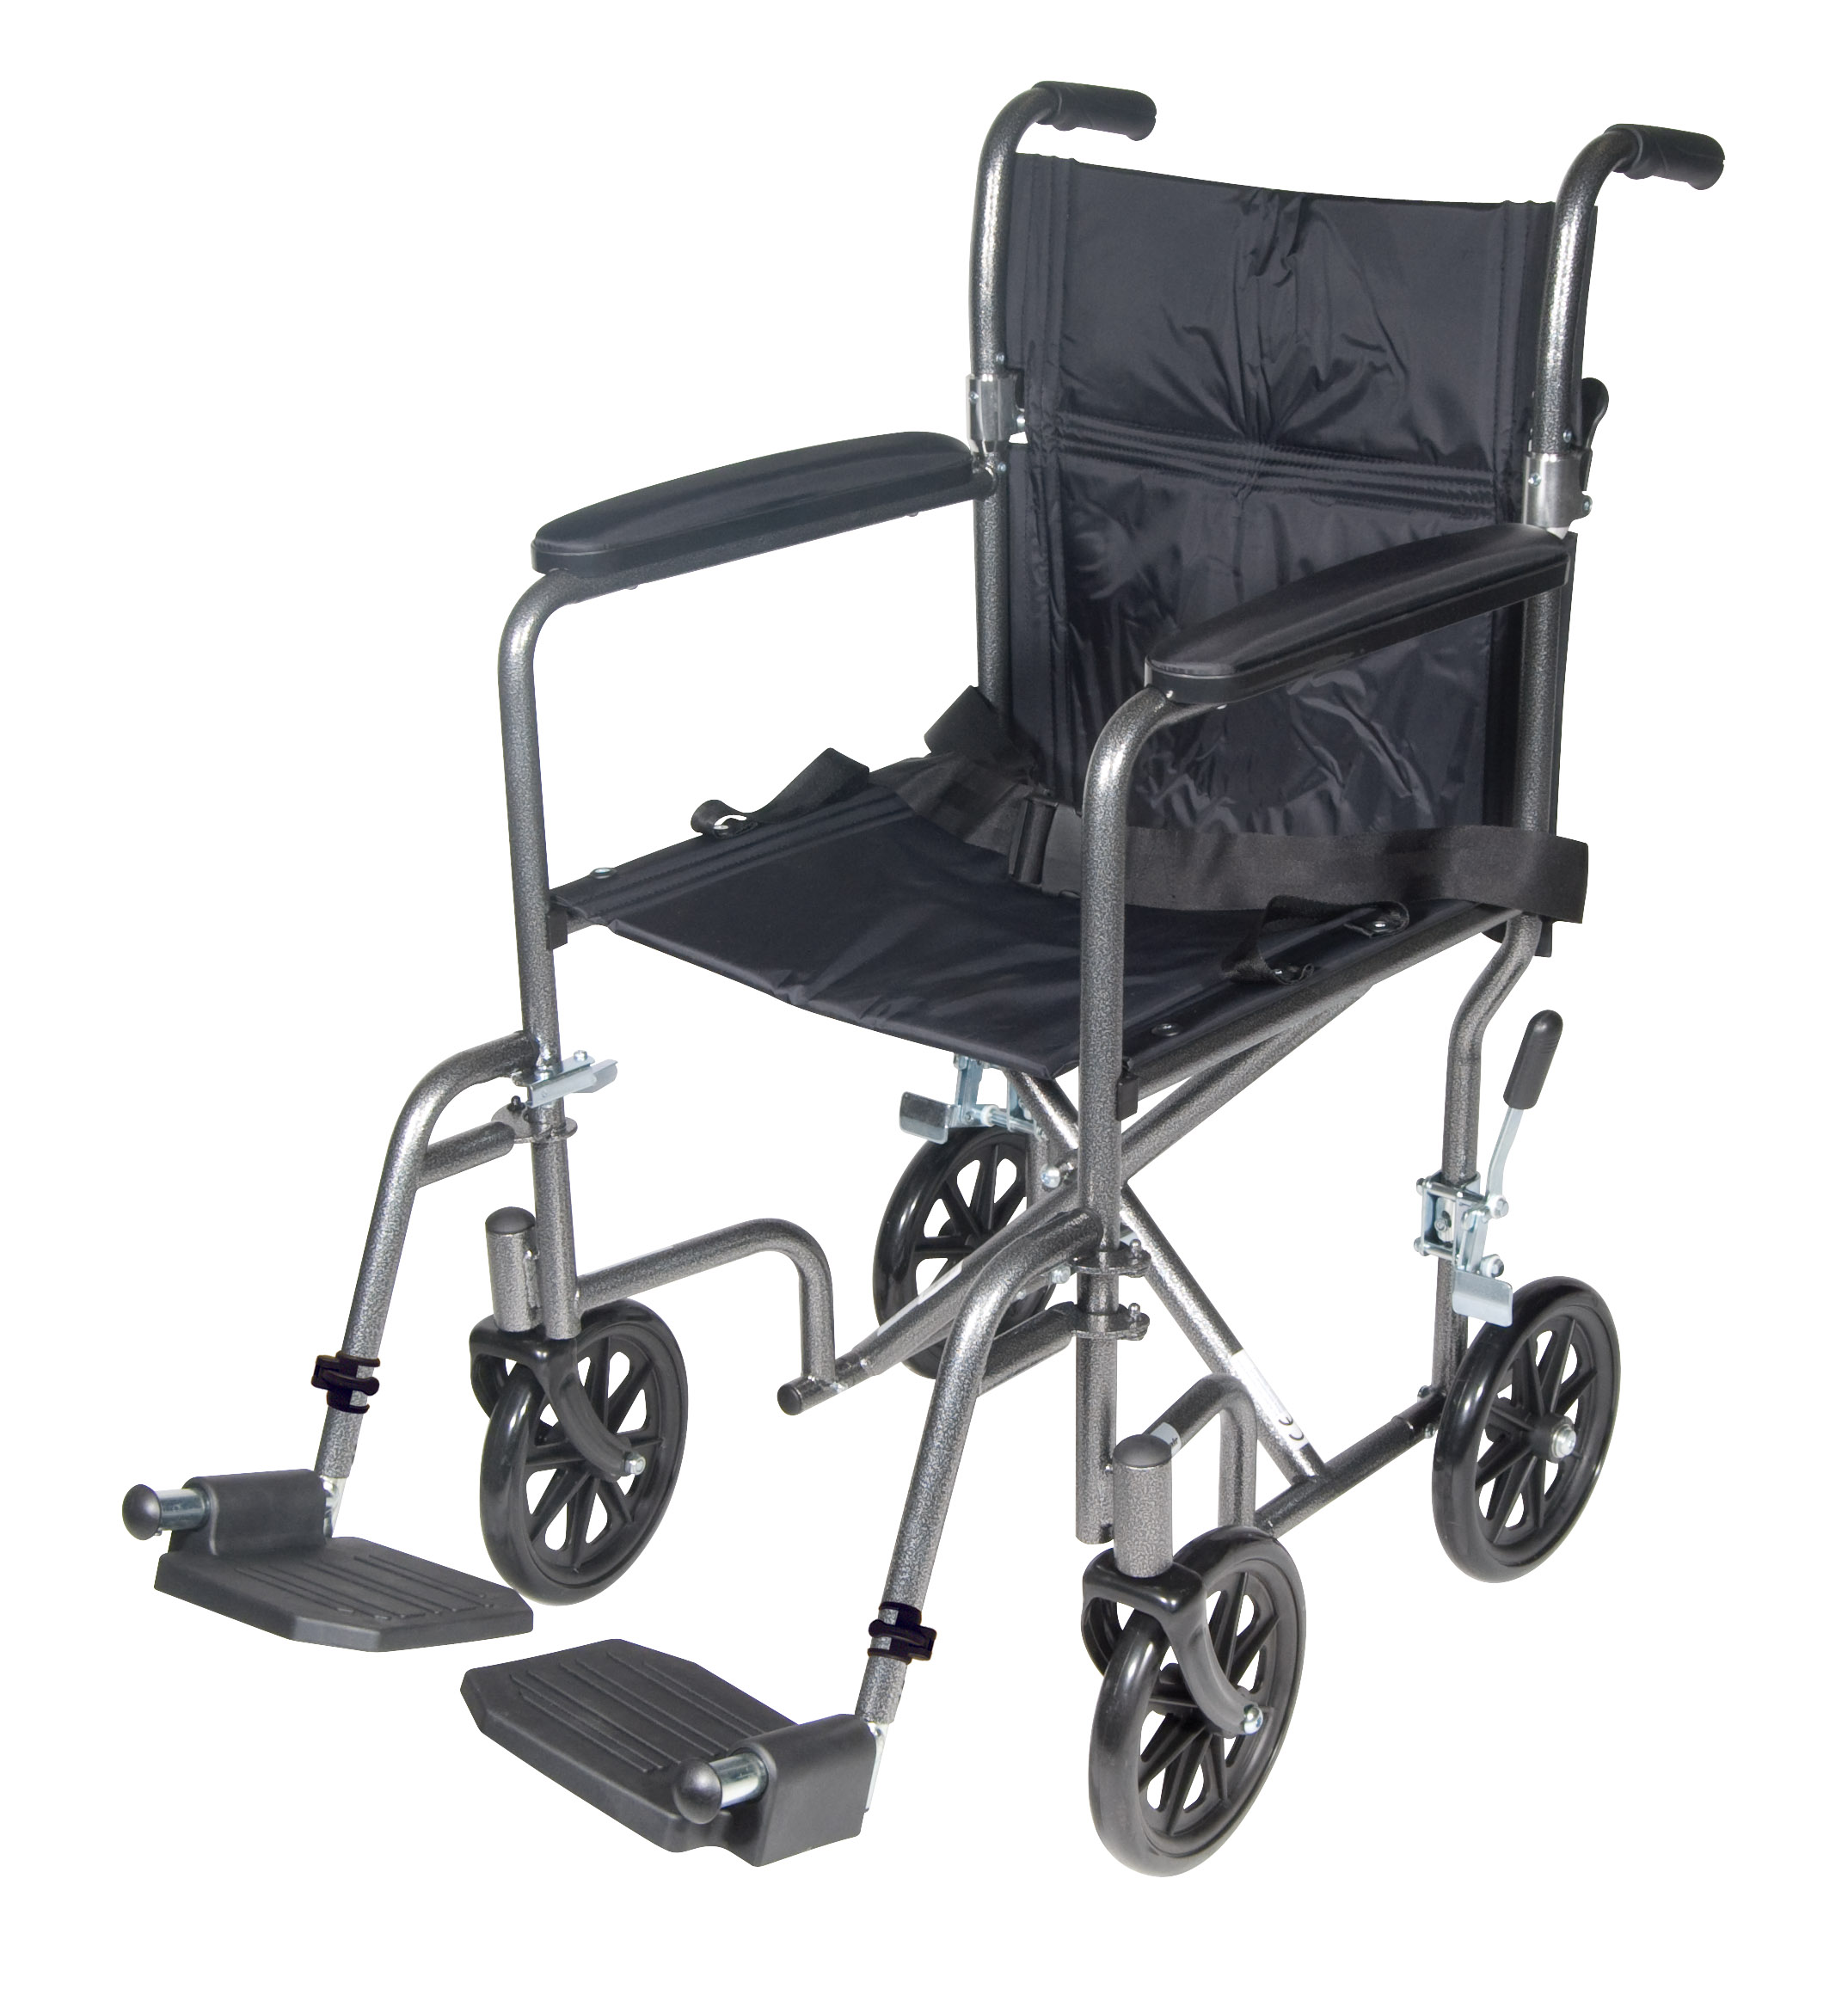 Drive Lightweight Steel Transport Wheelchair with Swing away Footrests